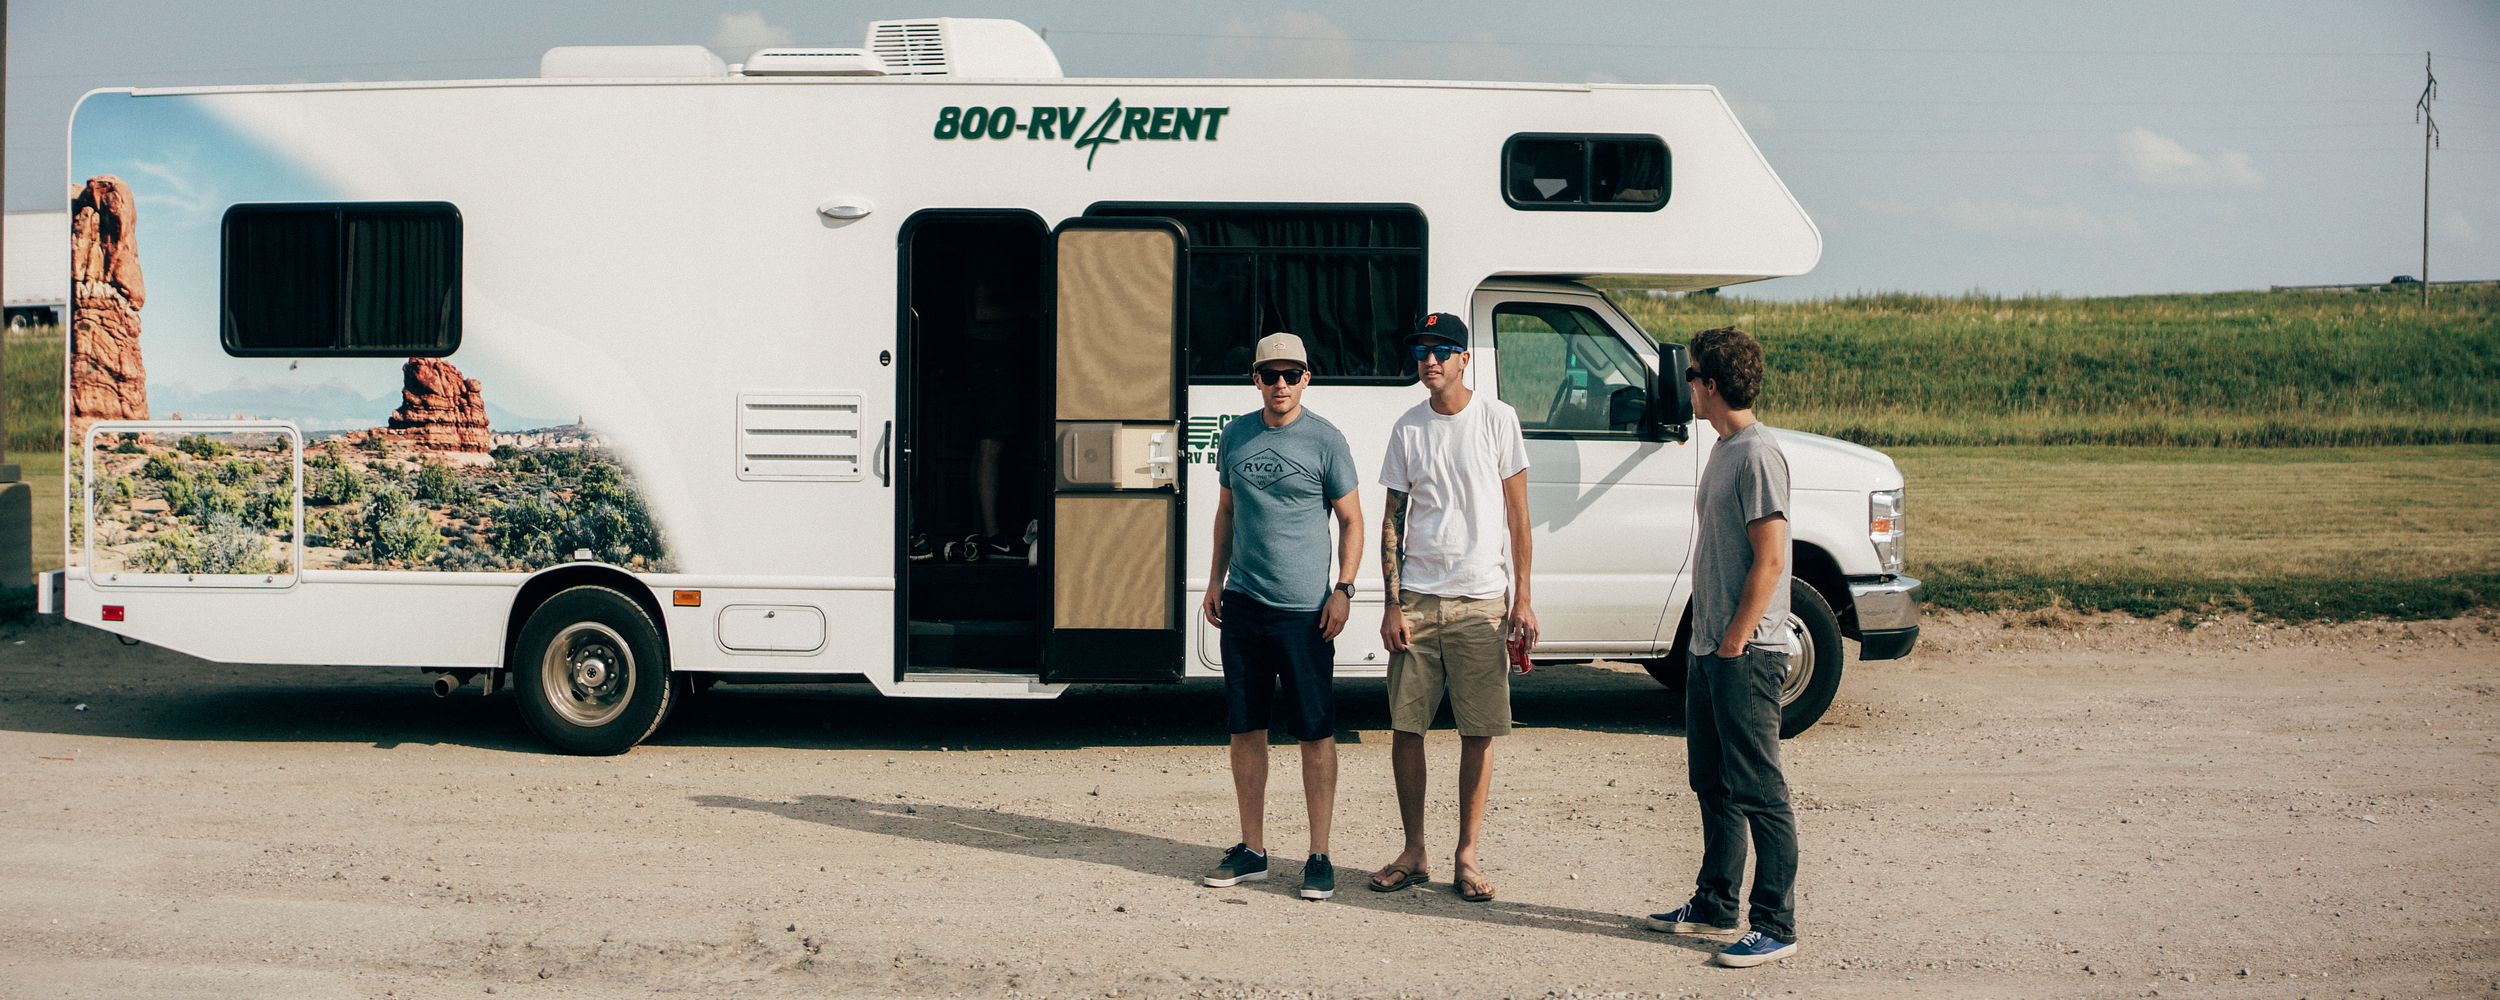 Somewhere in South Dakota. Tony, Steve, and Andy, looking like goons.